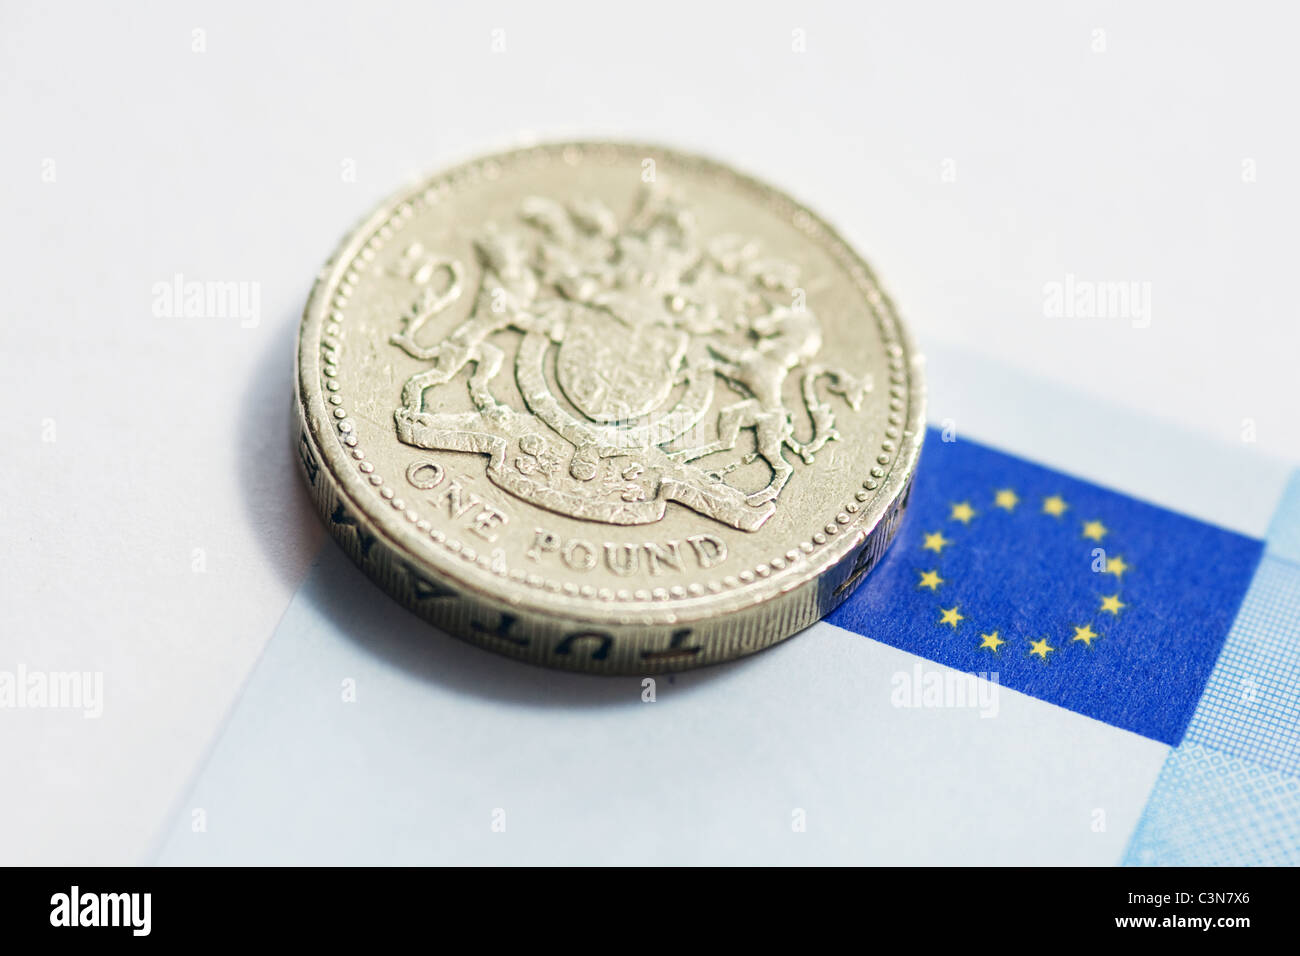 British Pound Coin on an Euro Banknote - Stock Image